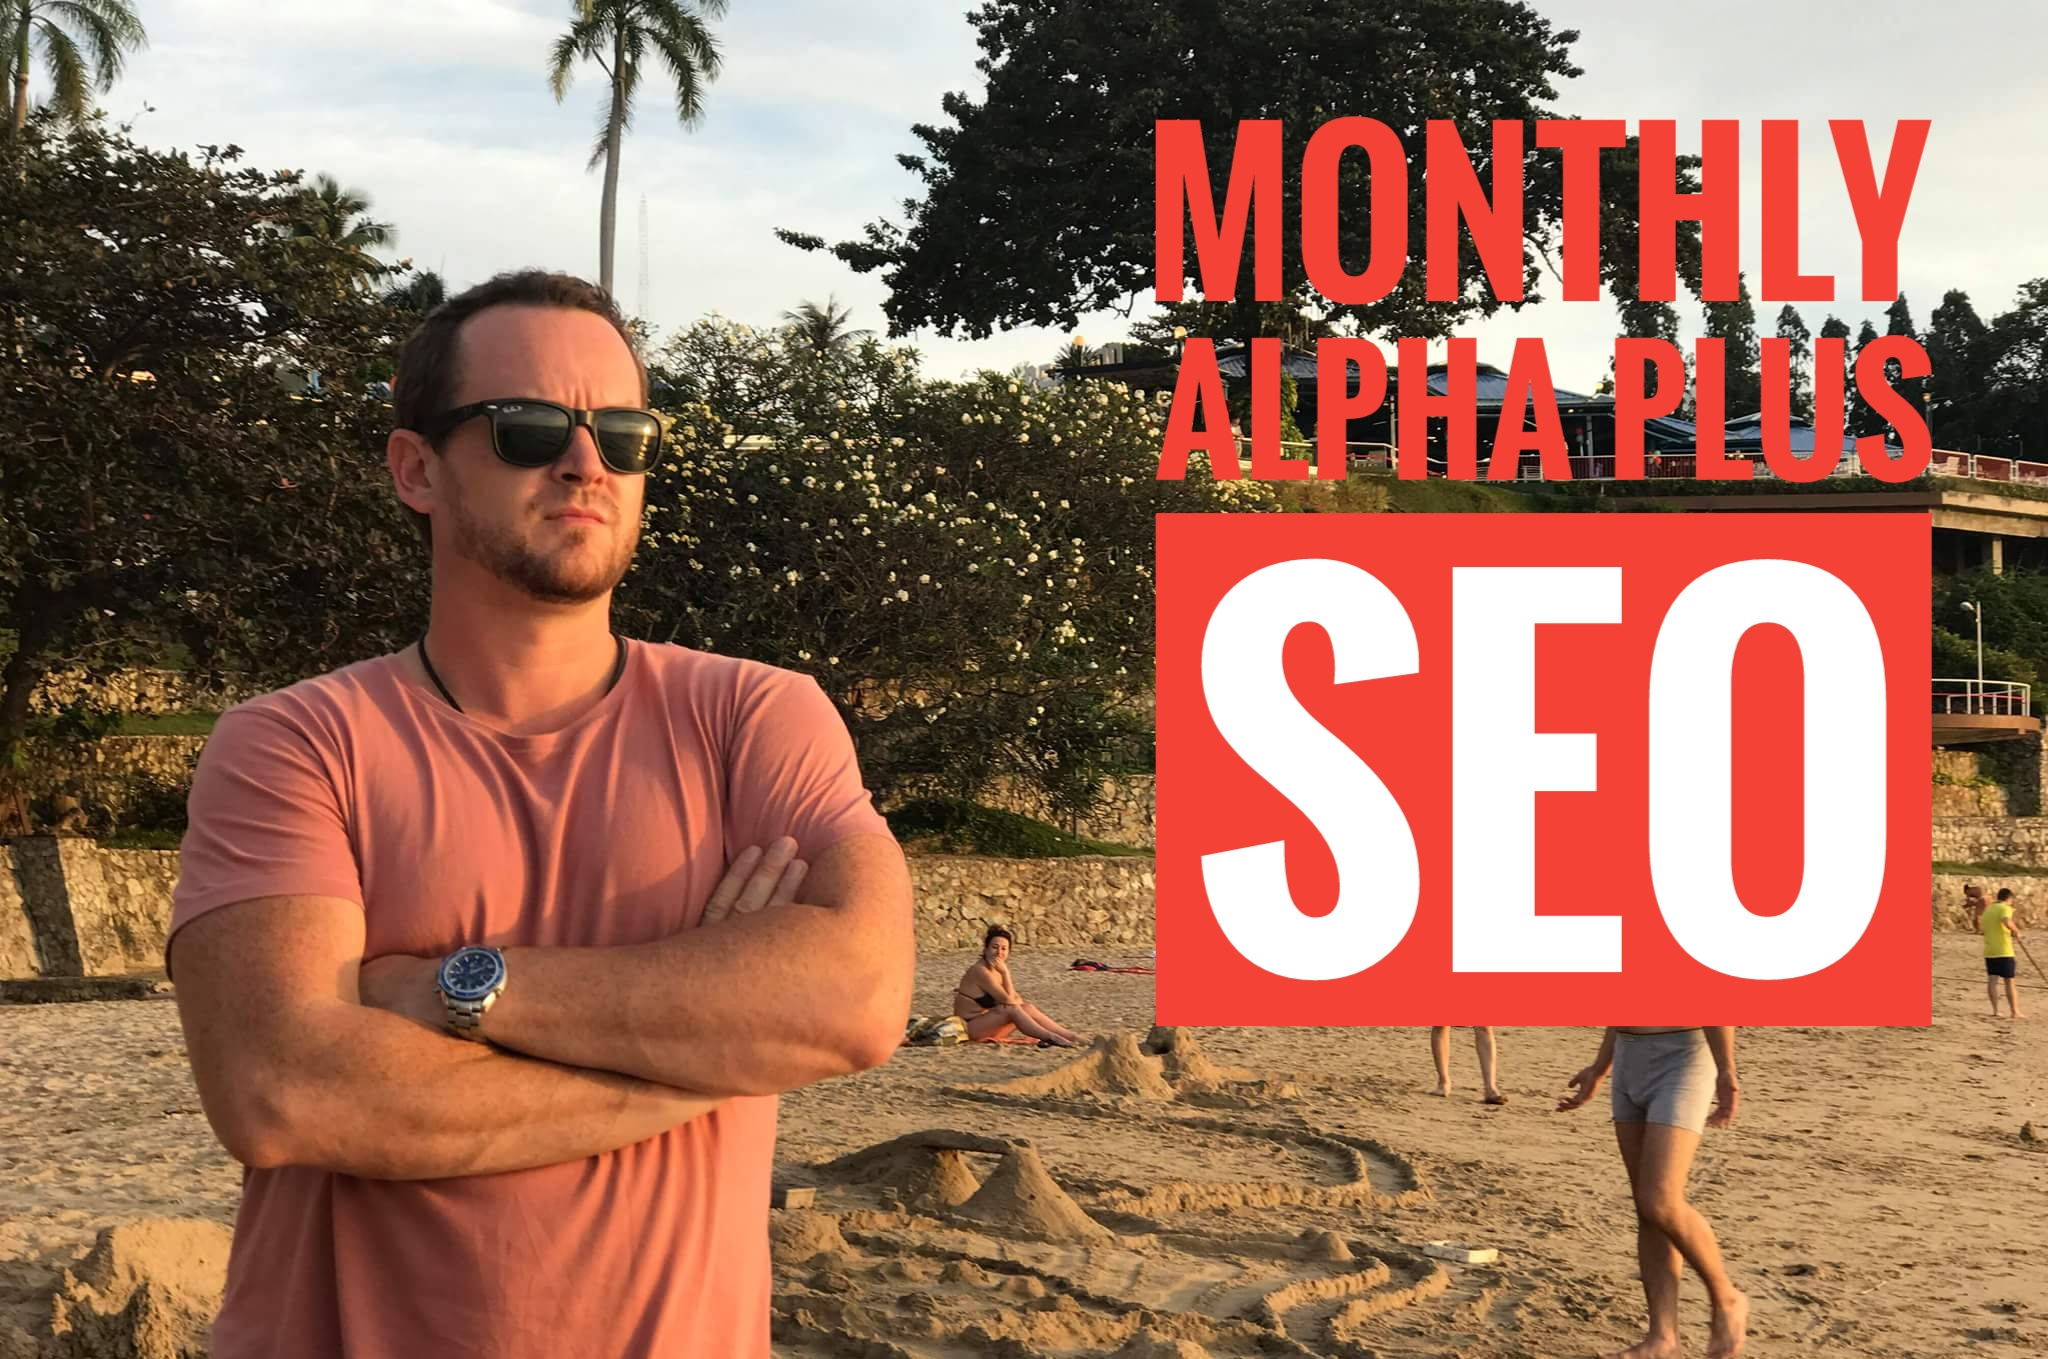 Monthly Alpha PLUS SEO v7.2 -Less Than 2 Bucks a Day, Your Monthly SEO is Taken Care Of